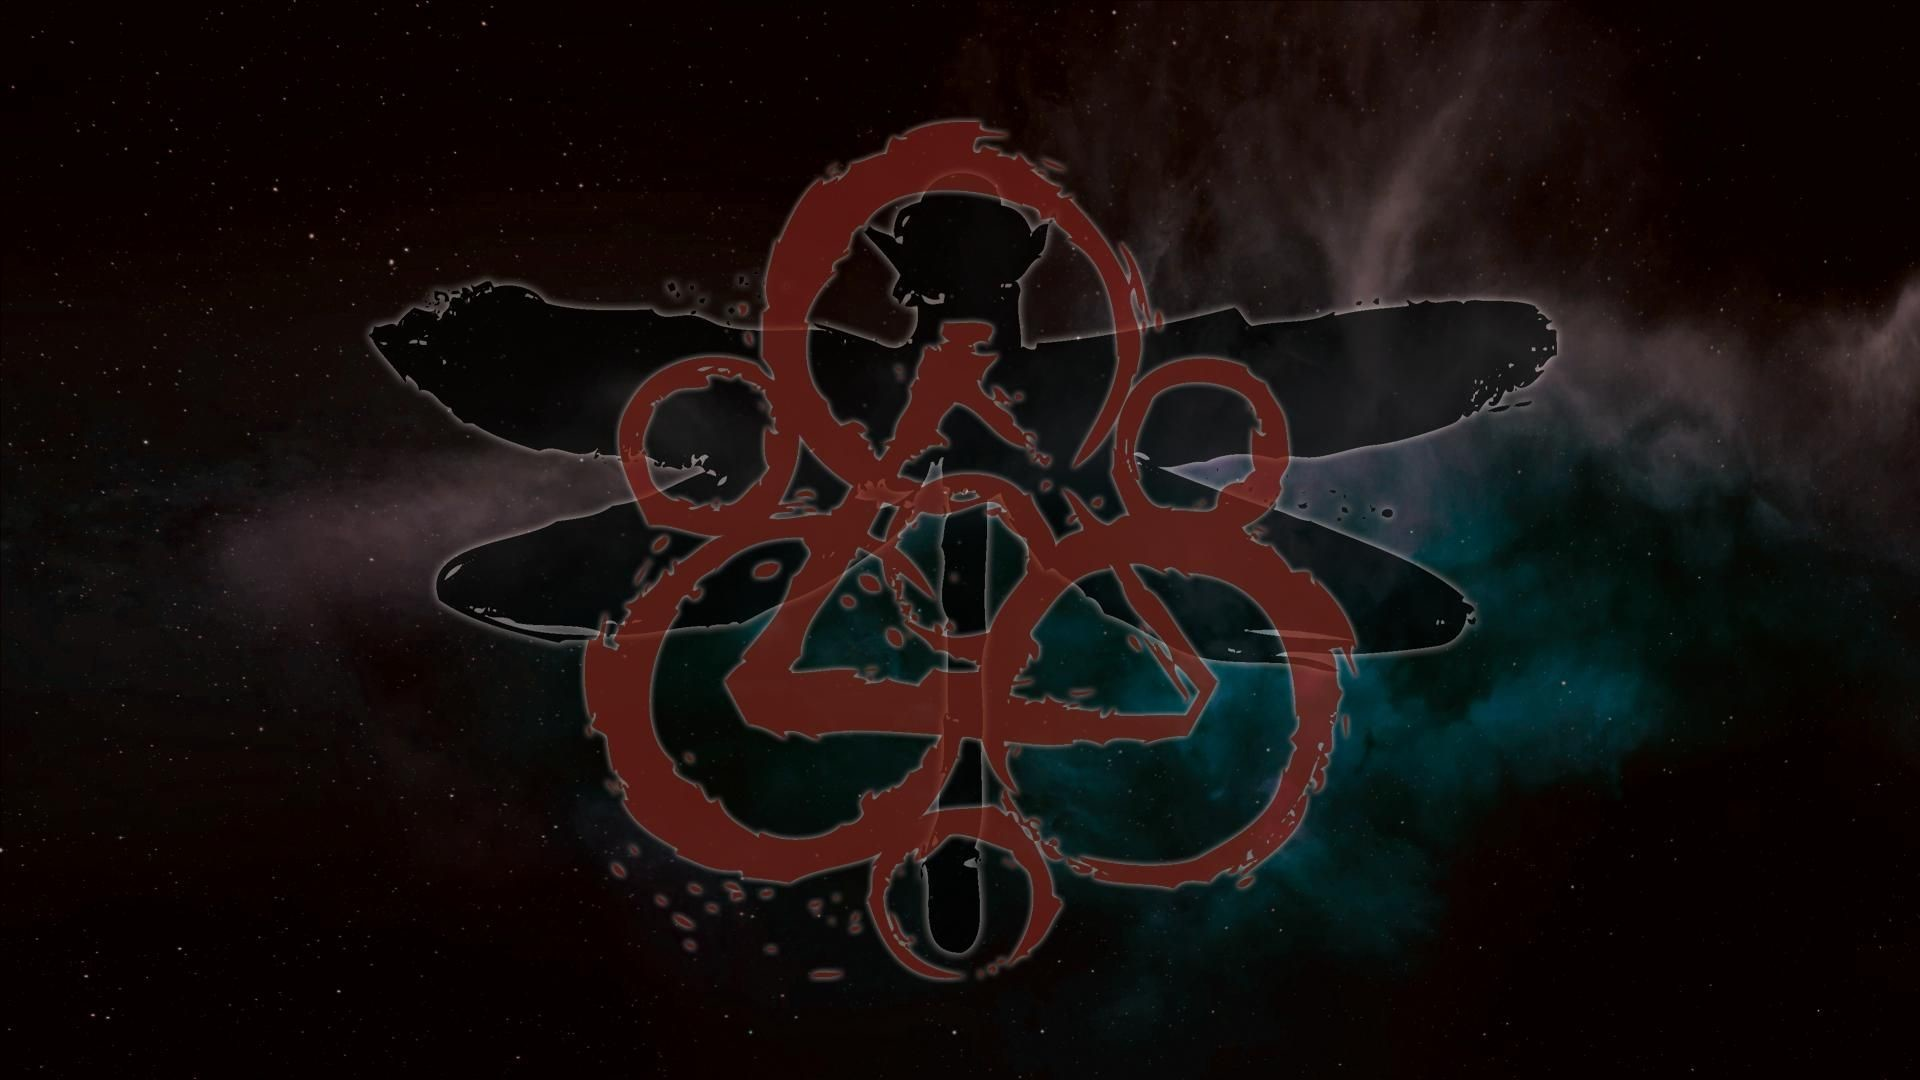 Res: 1920x1080, Coheed And Cambria Wallpapers, 100% Quality Coheed And Cambria HD